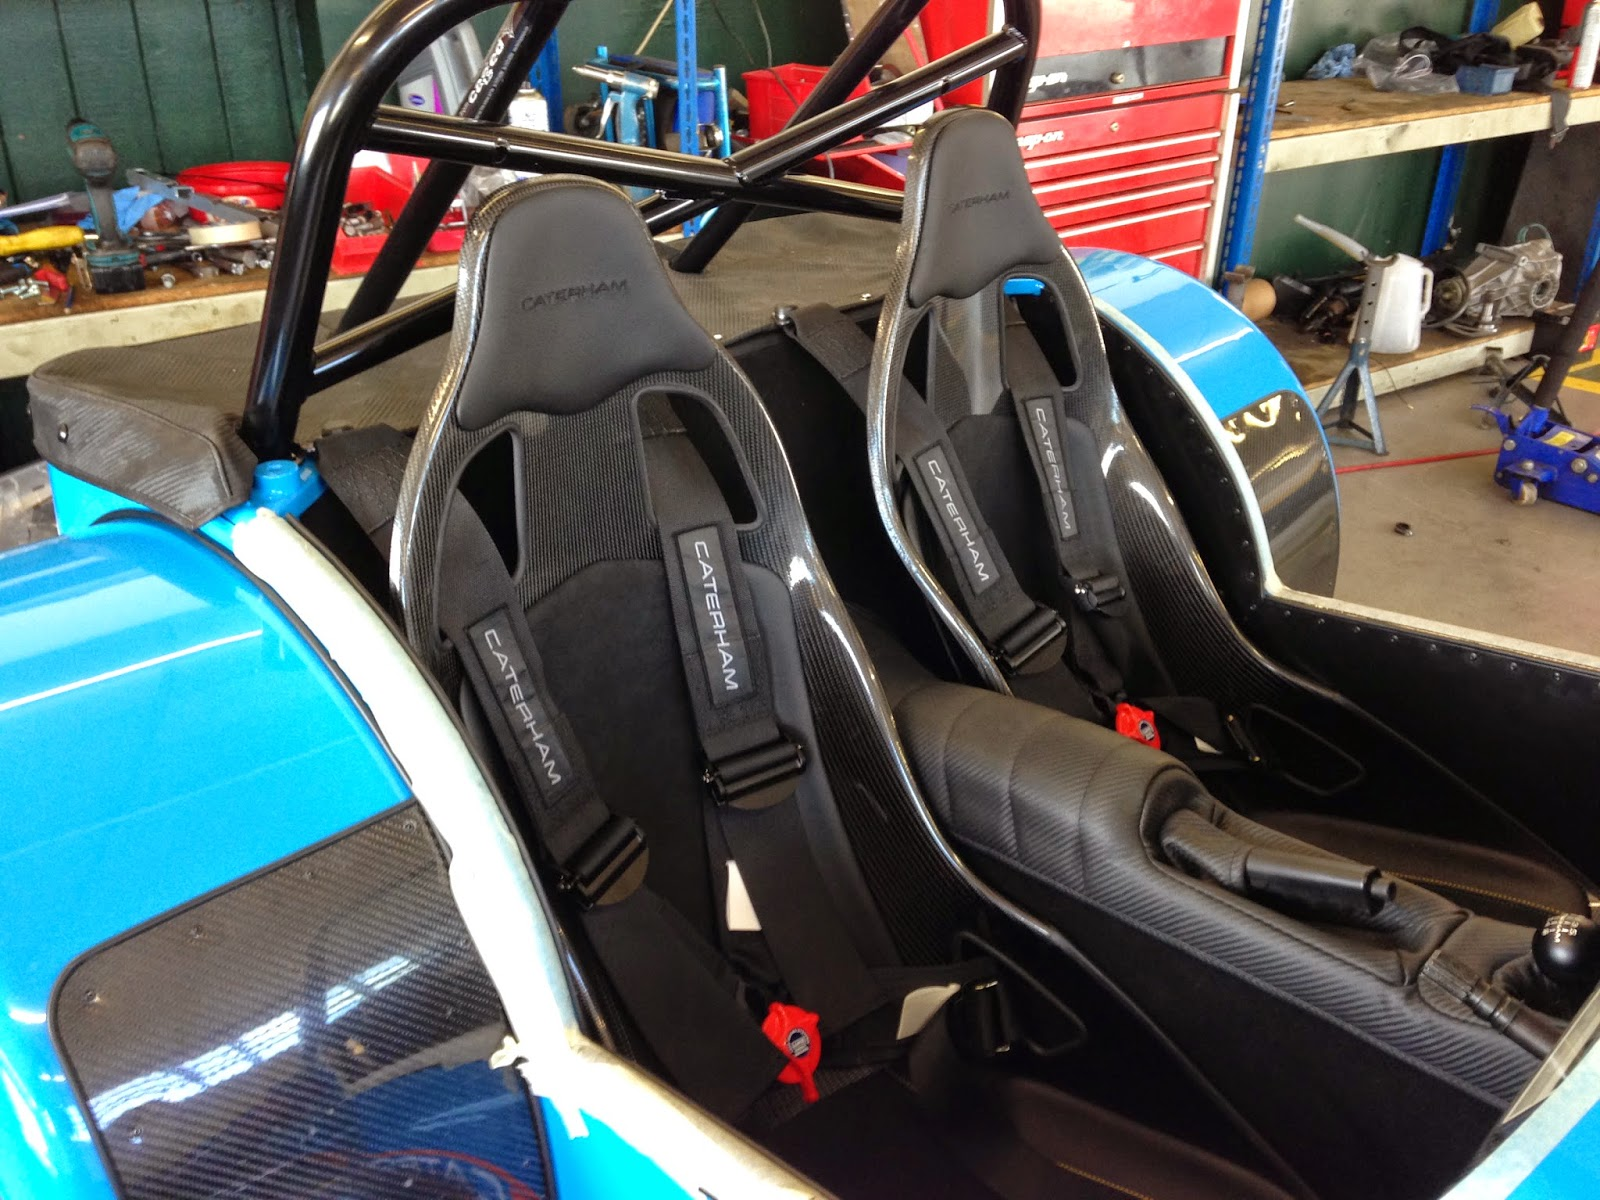 620R seats finally fitted to my Caterham R500